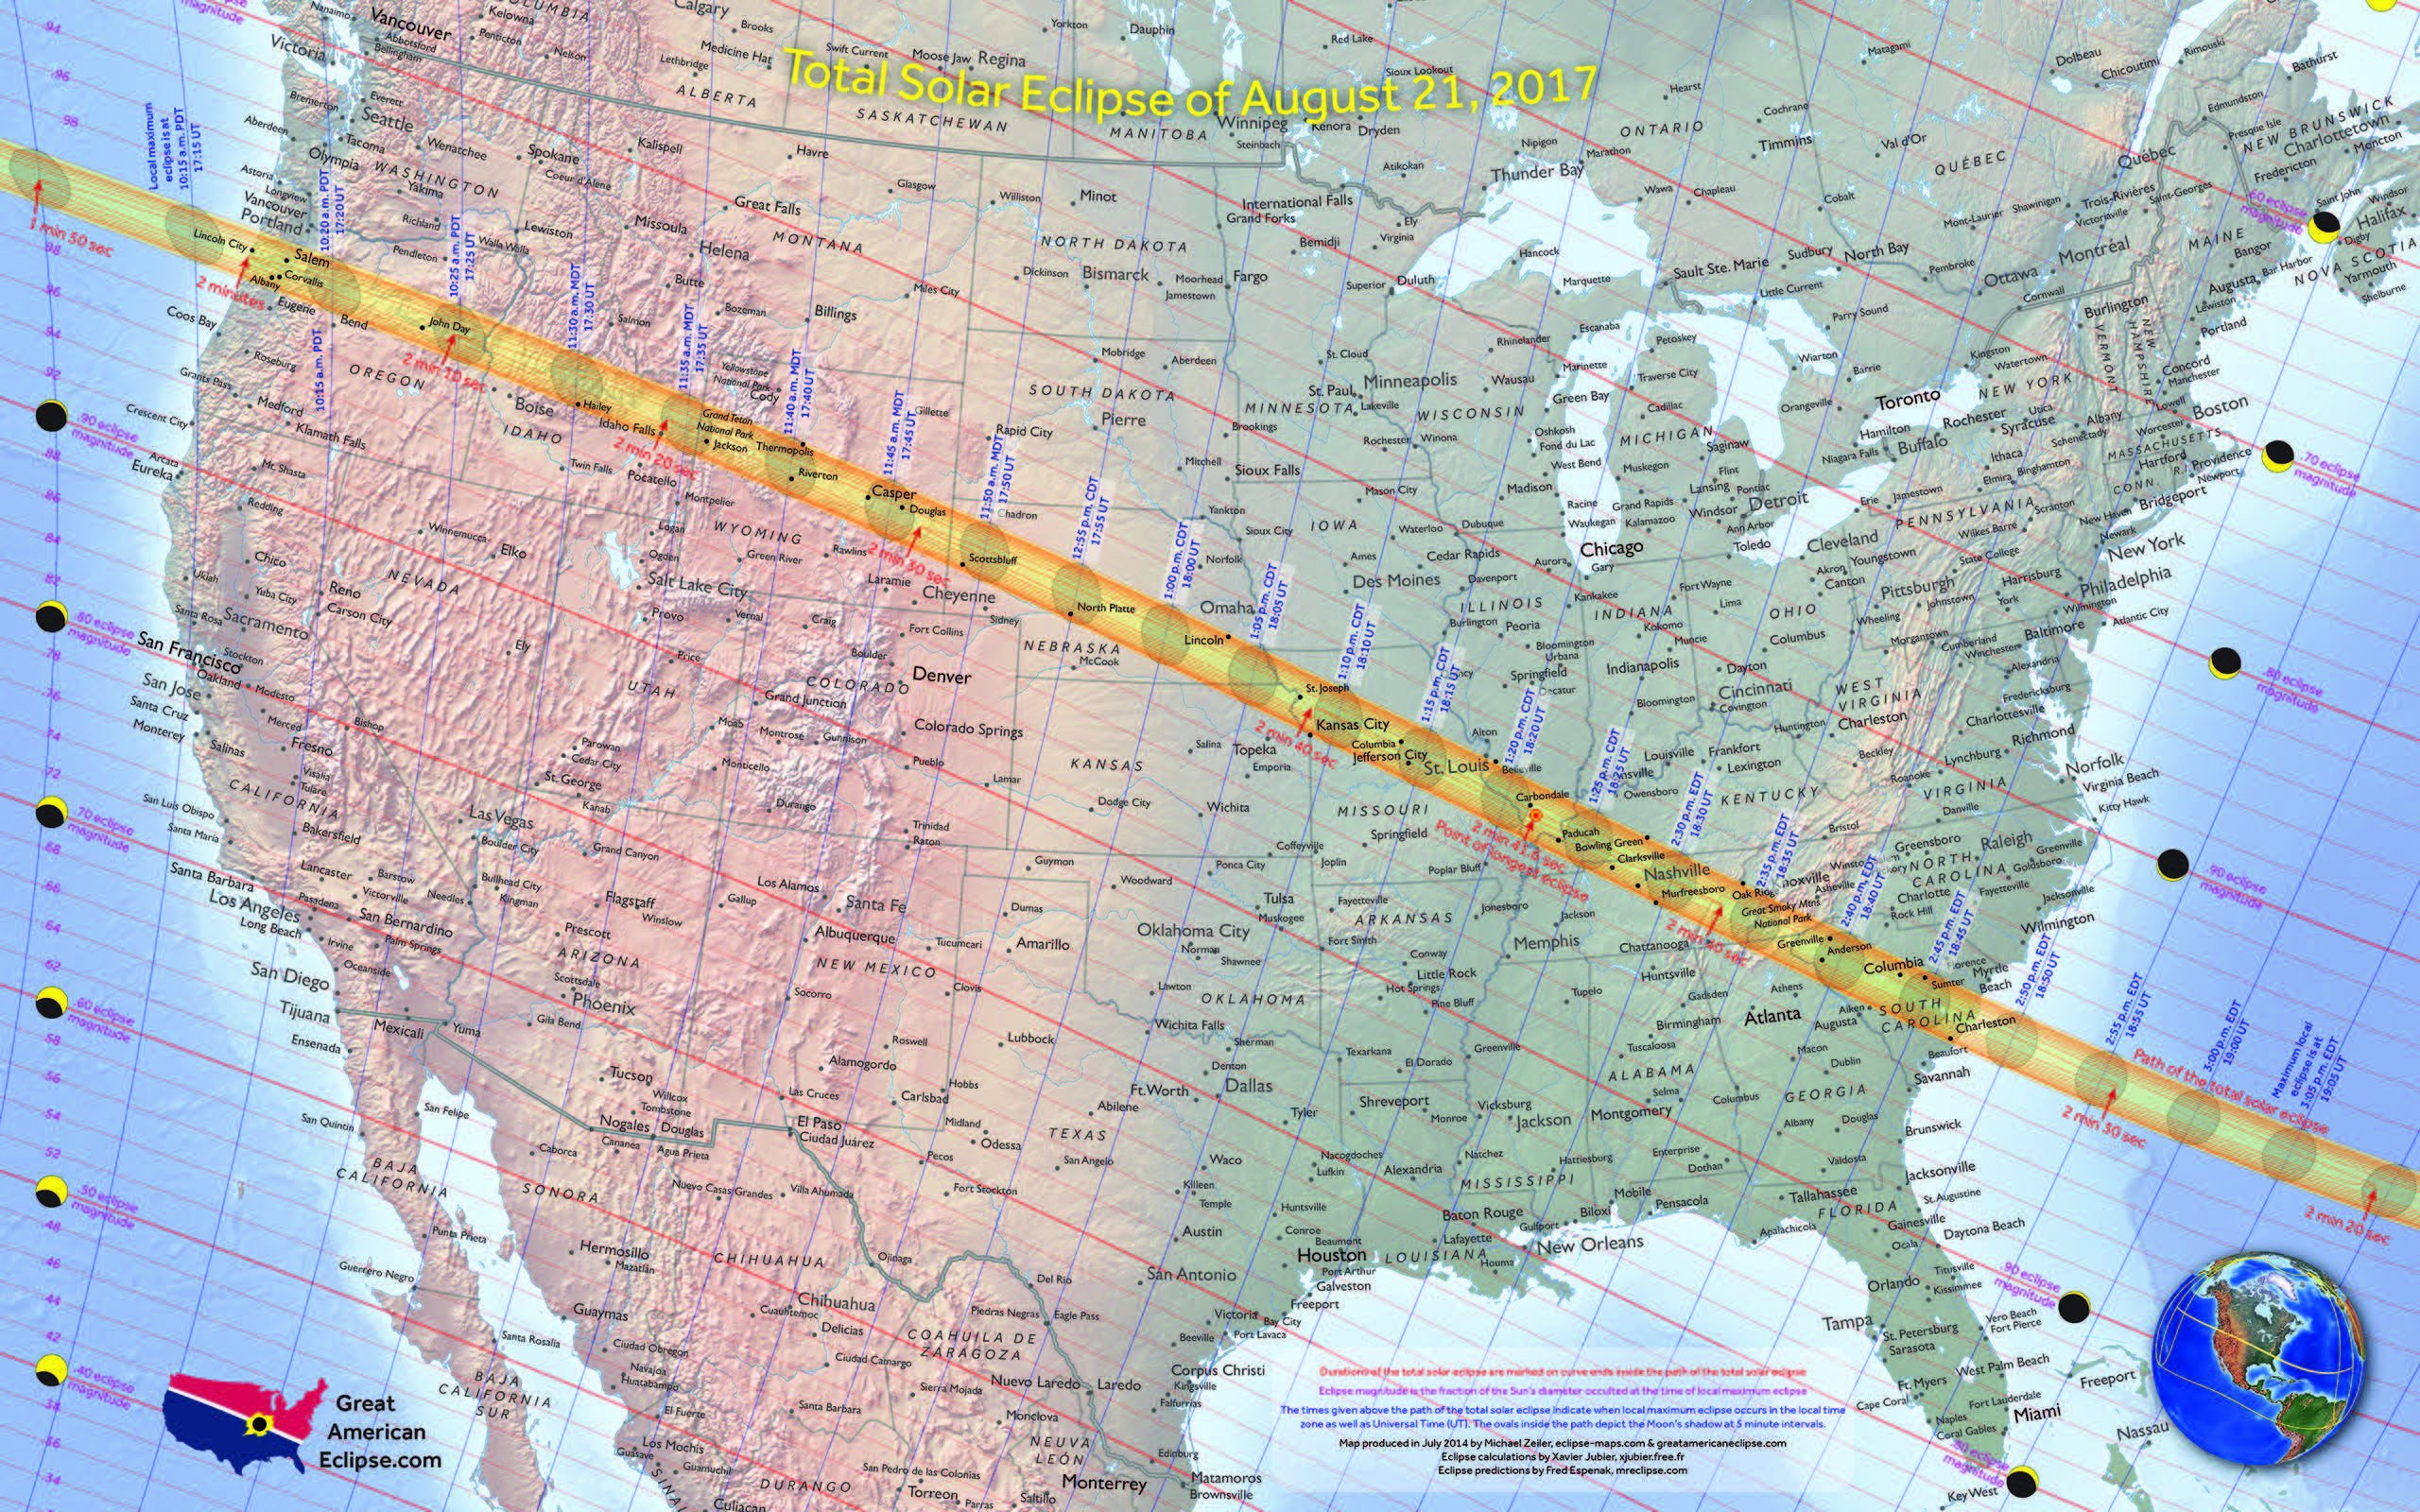 Path of the August 21, 2017 total solar eclipse over North America.